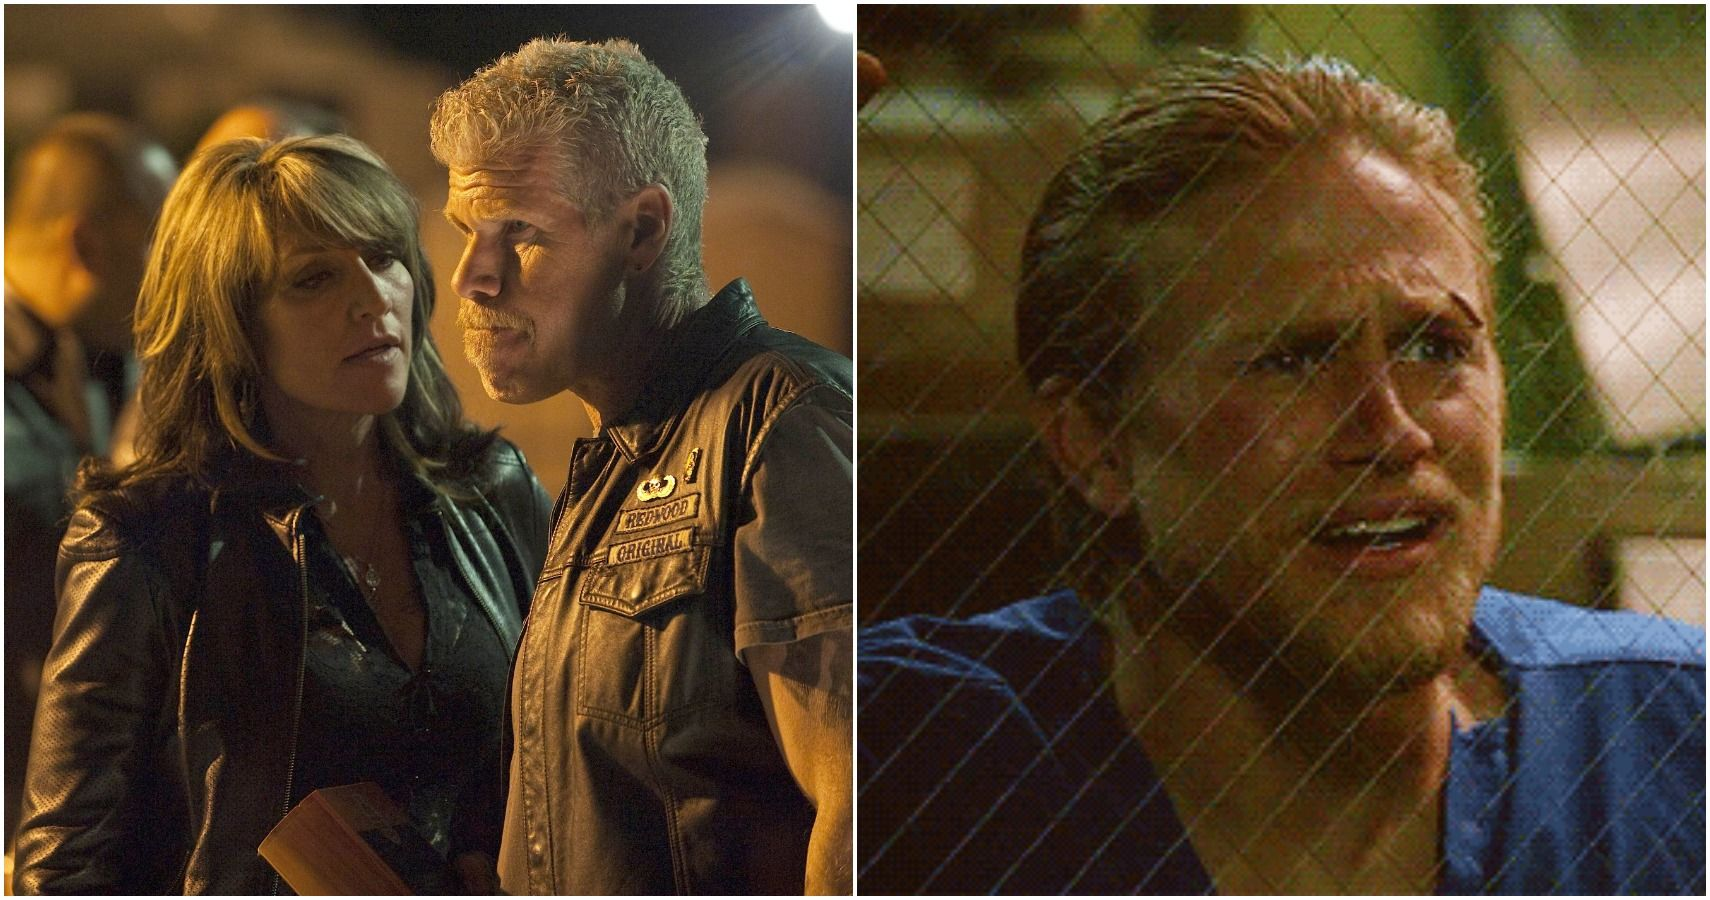 Sons Of Anarchy: 10 Scenes That Make Viewers Nervous When Rewatching